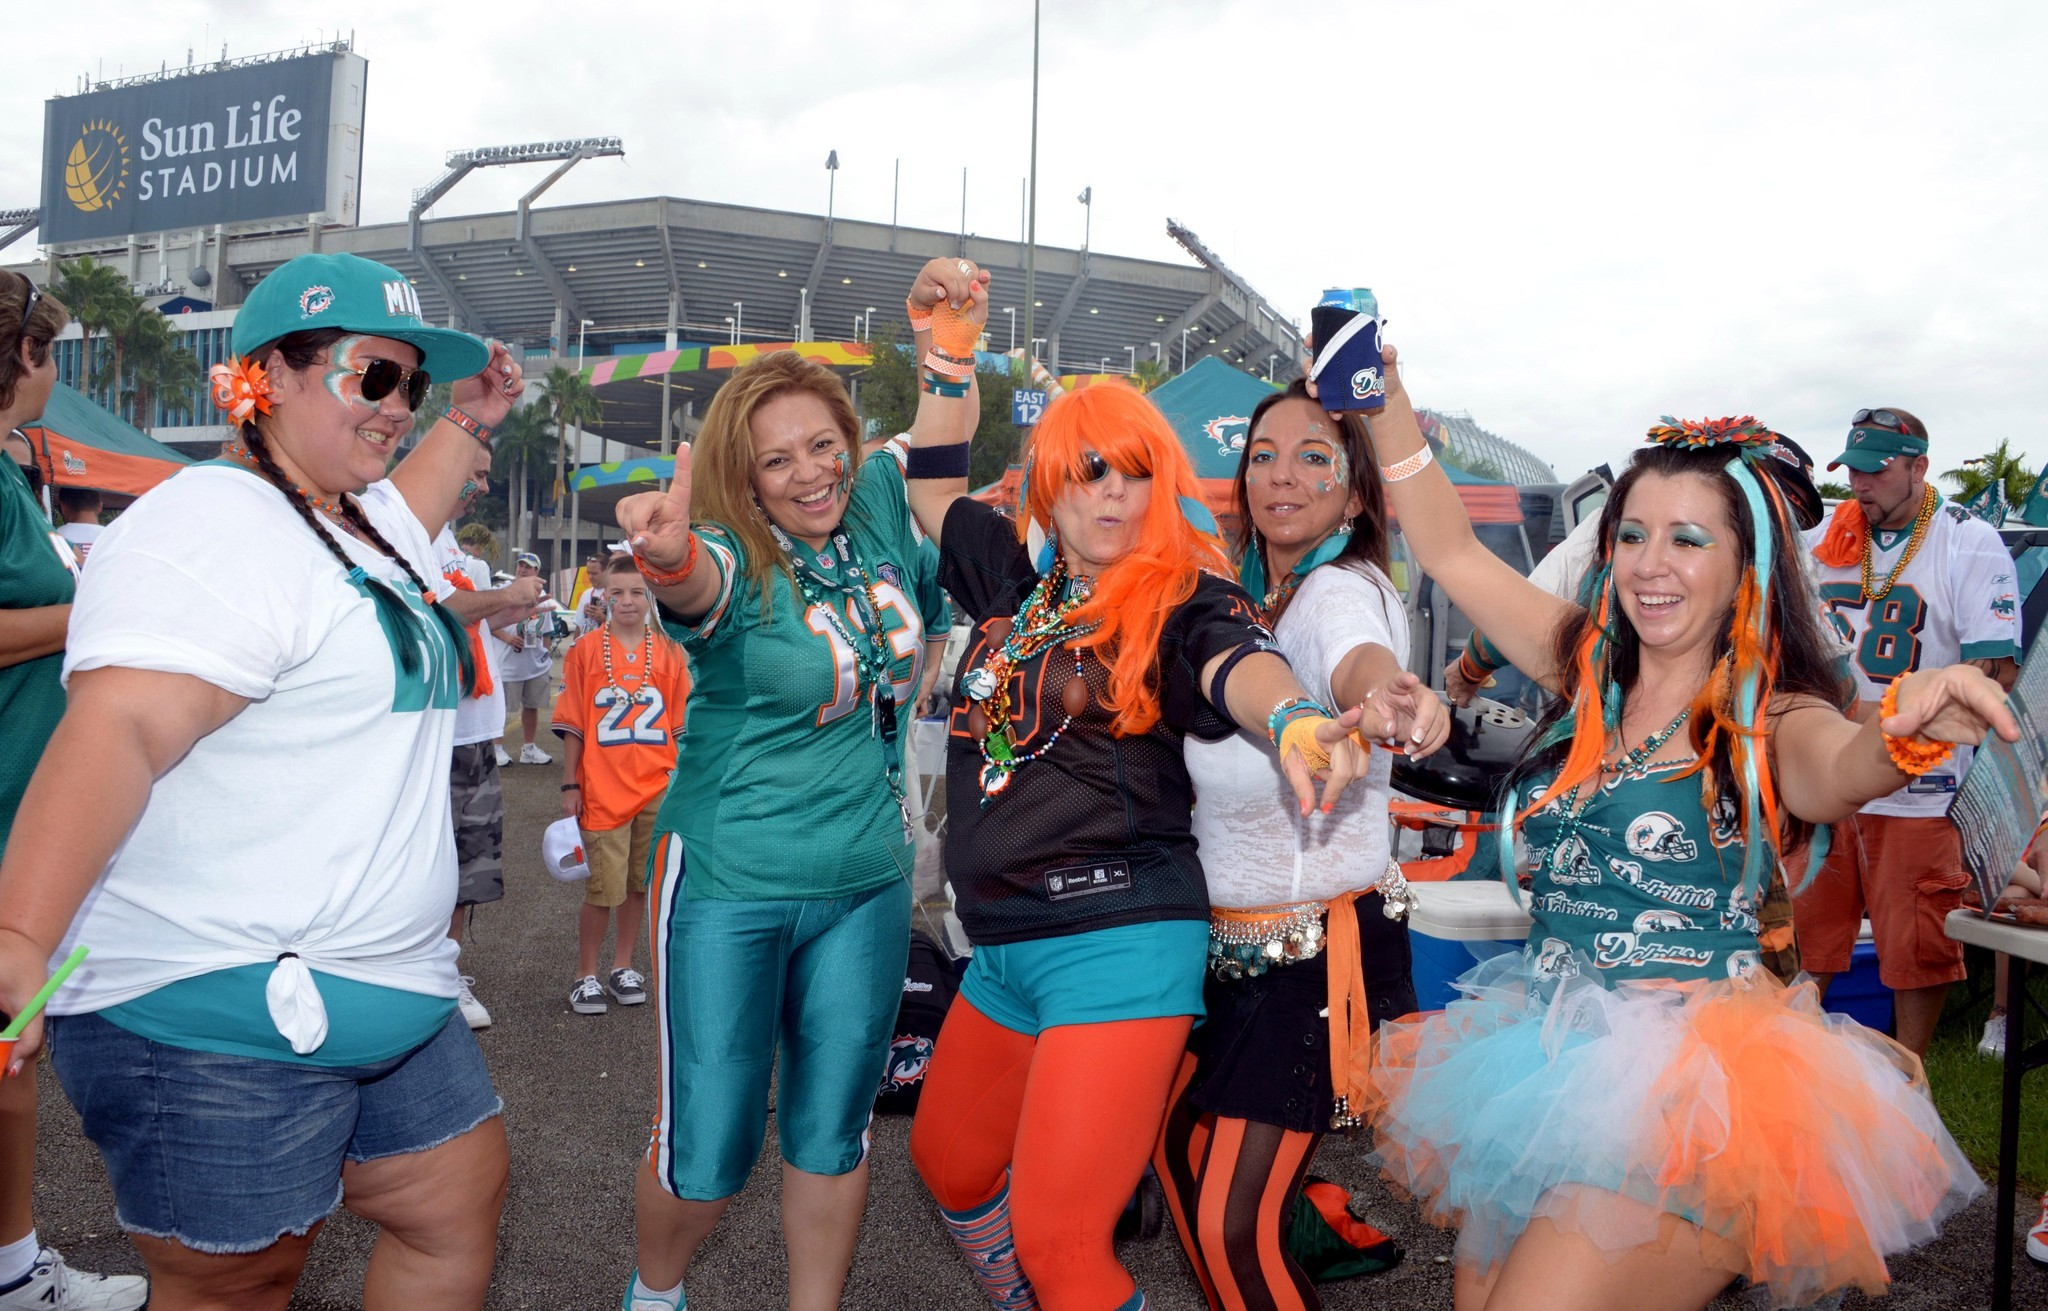 Things every South Floridian should do once - Tailgate at a Miami Dolphins game